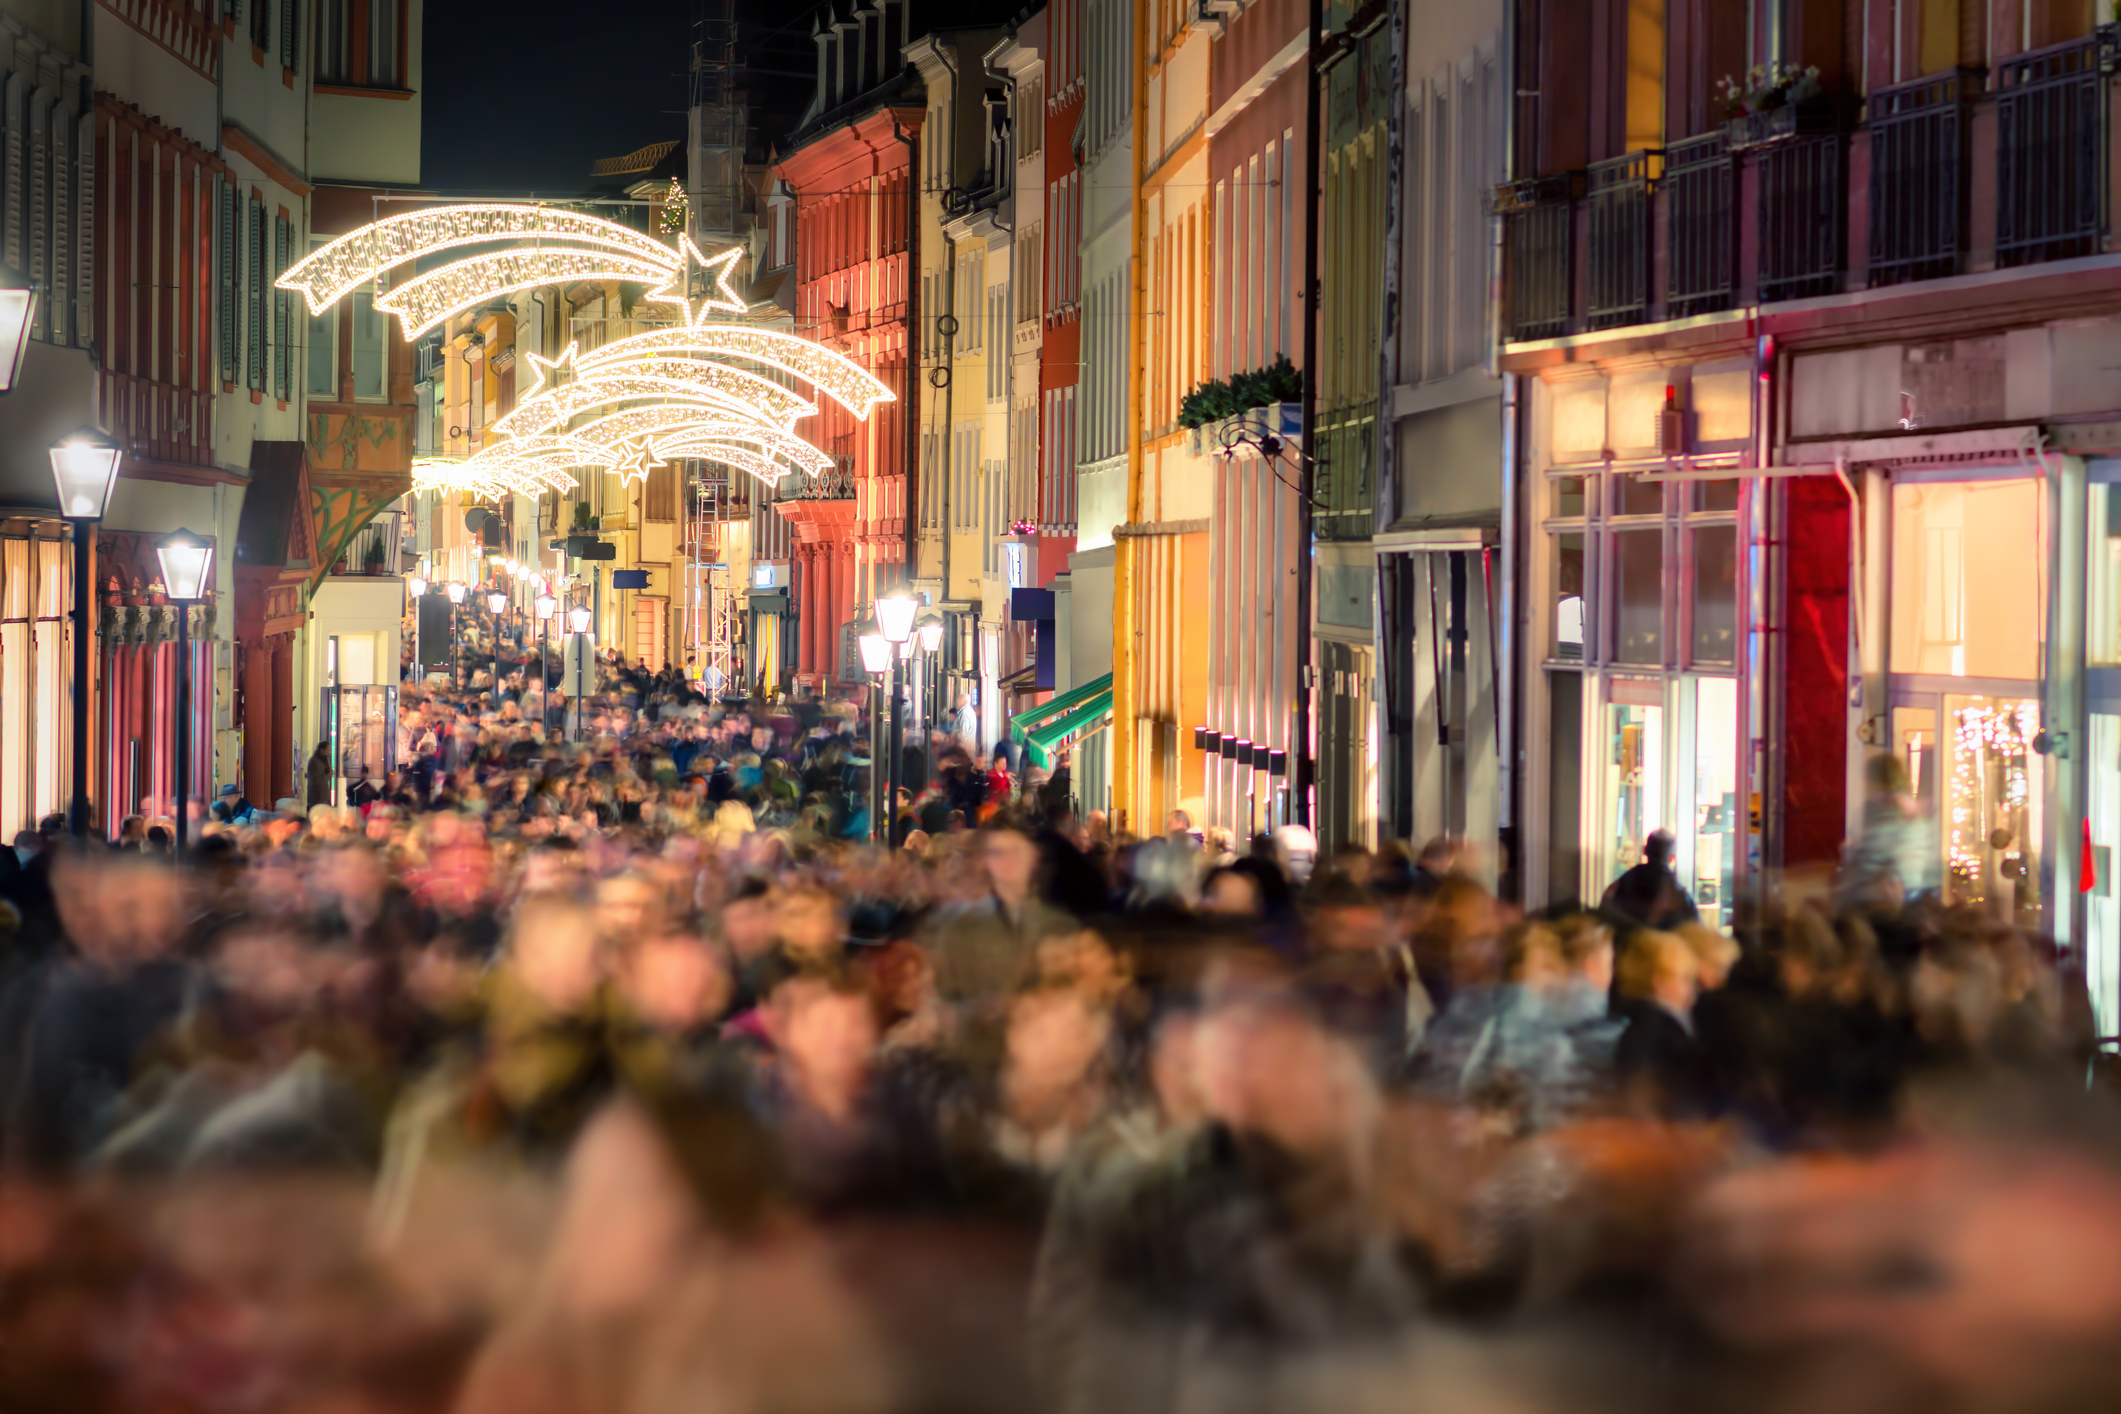 Crowded streets at Christmas.